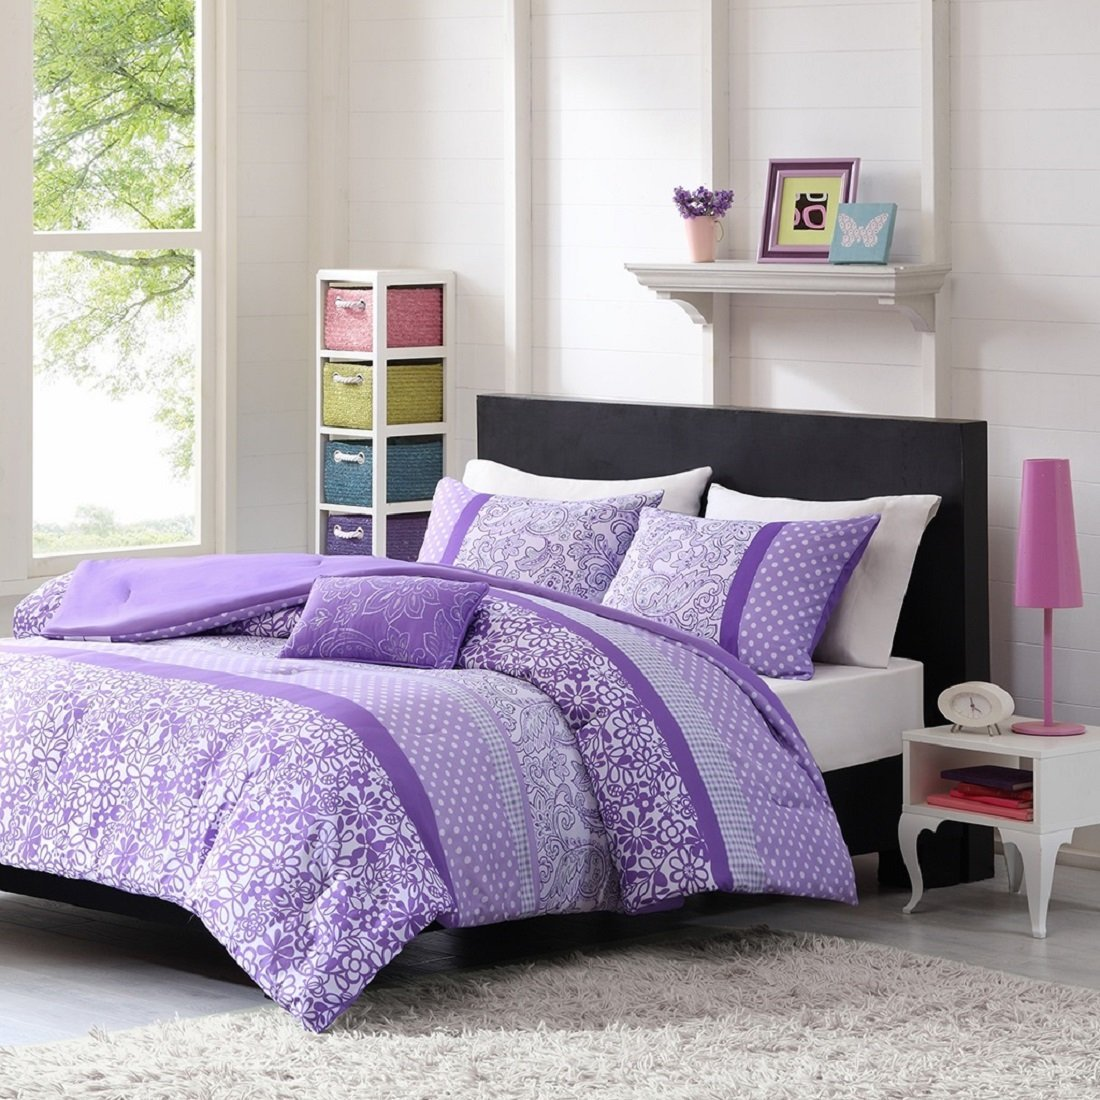 Get Quotations · Teen Girl Comforter Sets Purple Lavender Lilac Bedding  Flower Paisley Polka Dot Design With Embroidered Pillow